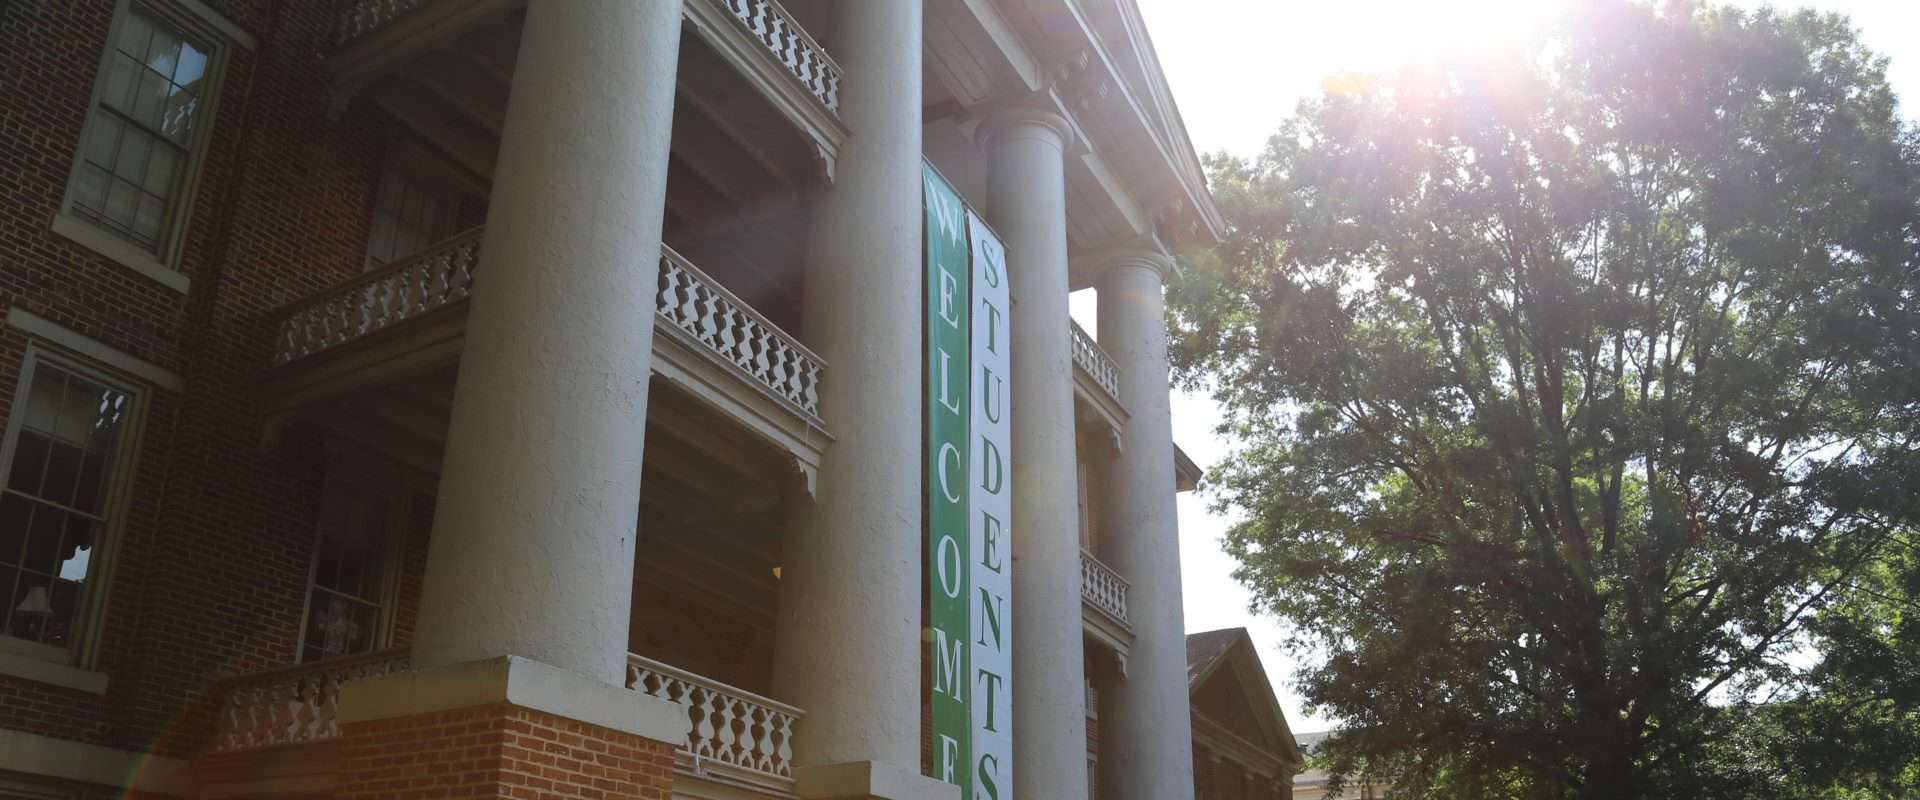 Main Building with Welcome Students Banners